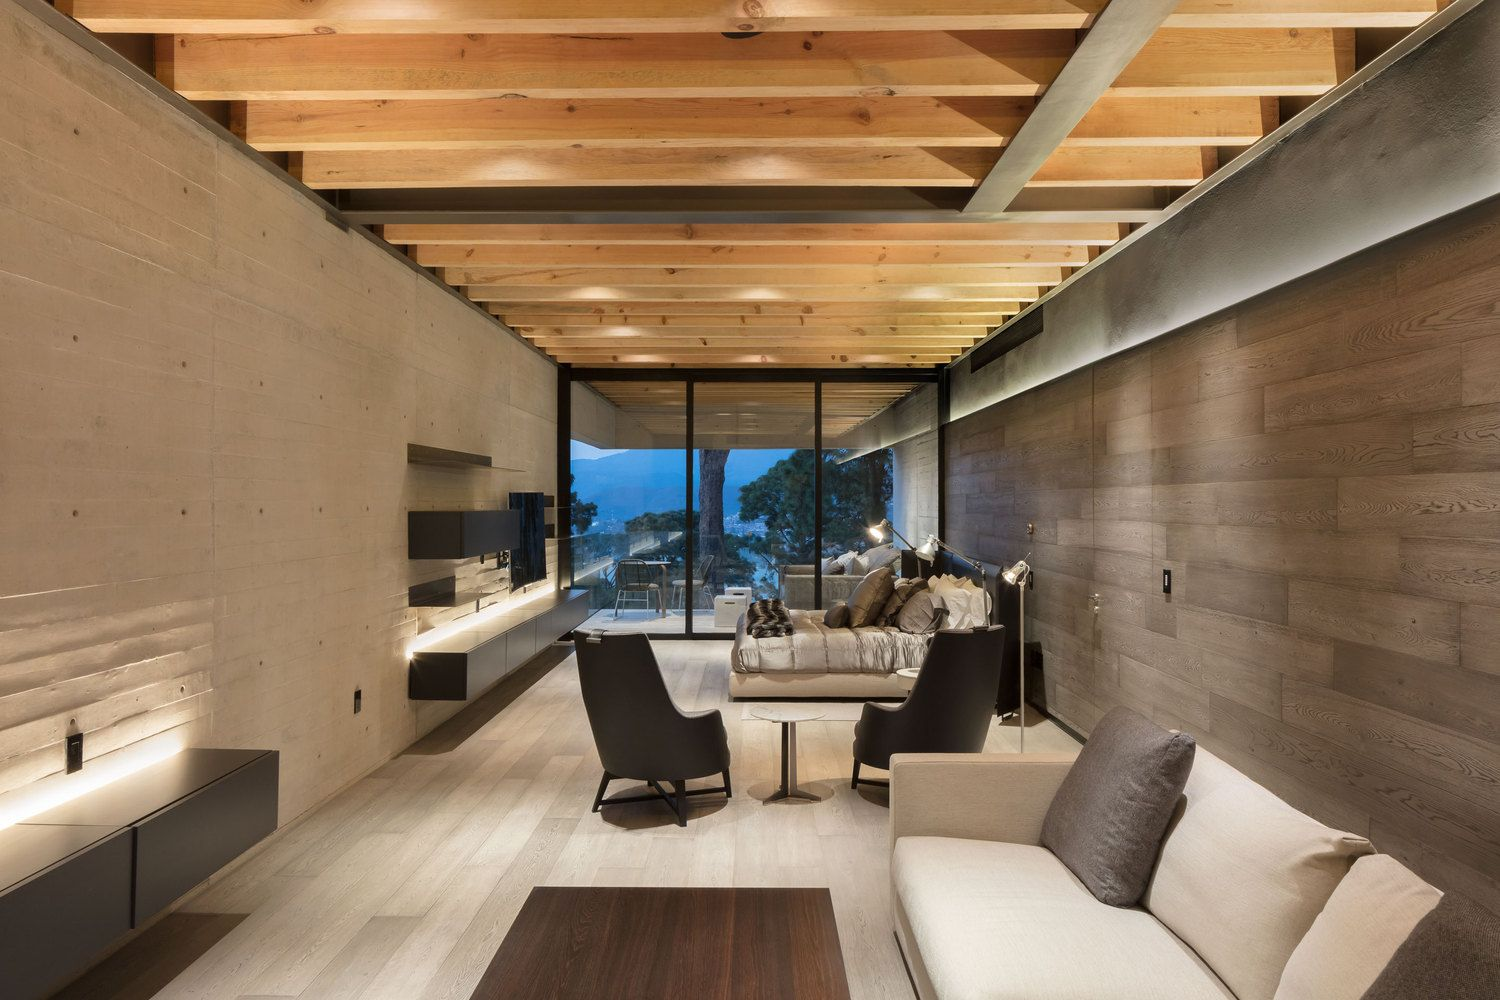 modern house interiors%0A Gallery of Lake View House   grupoarquitectura